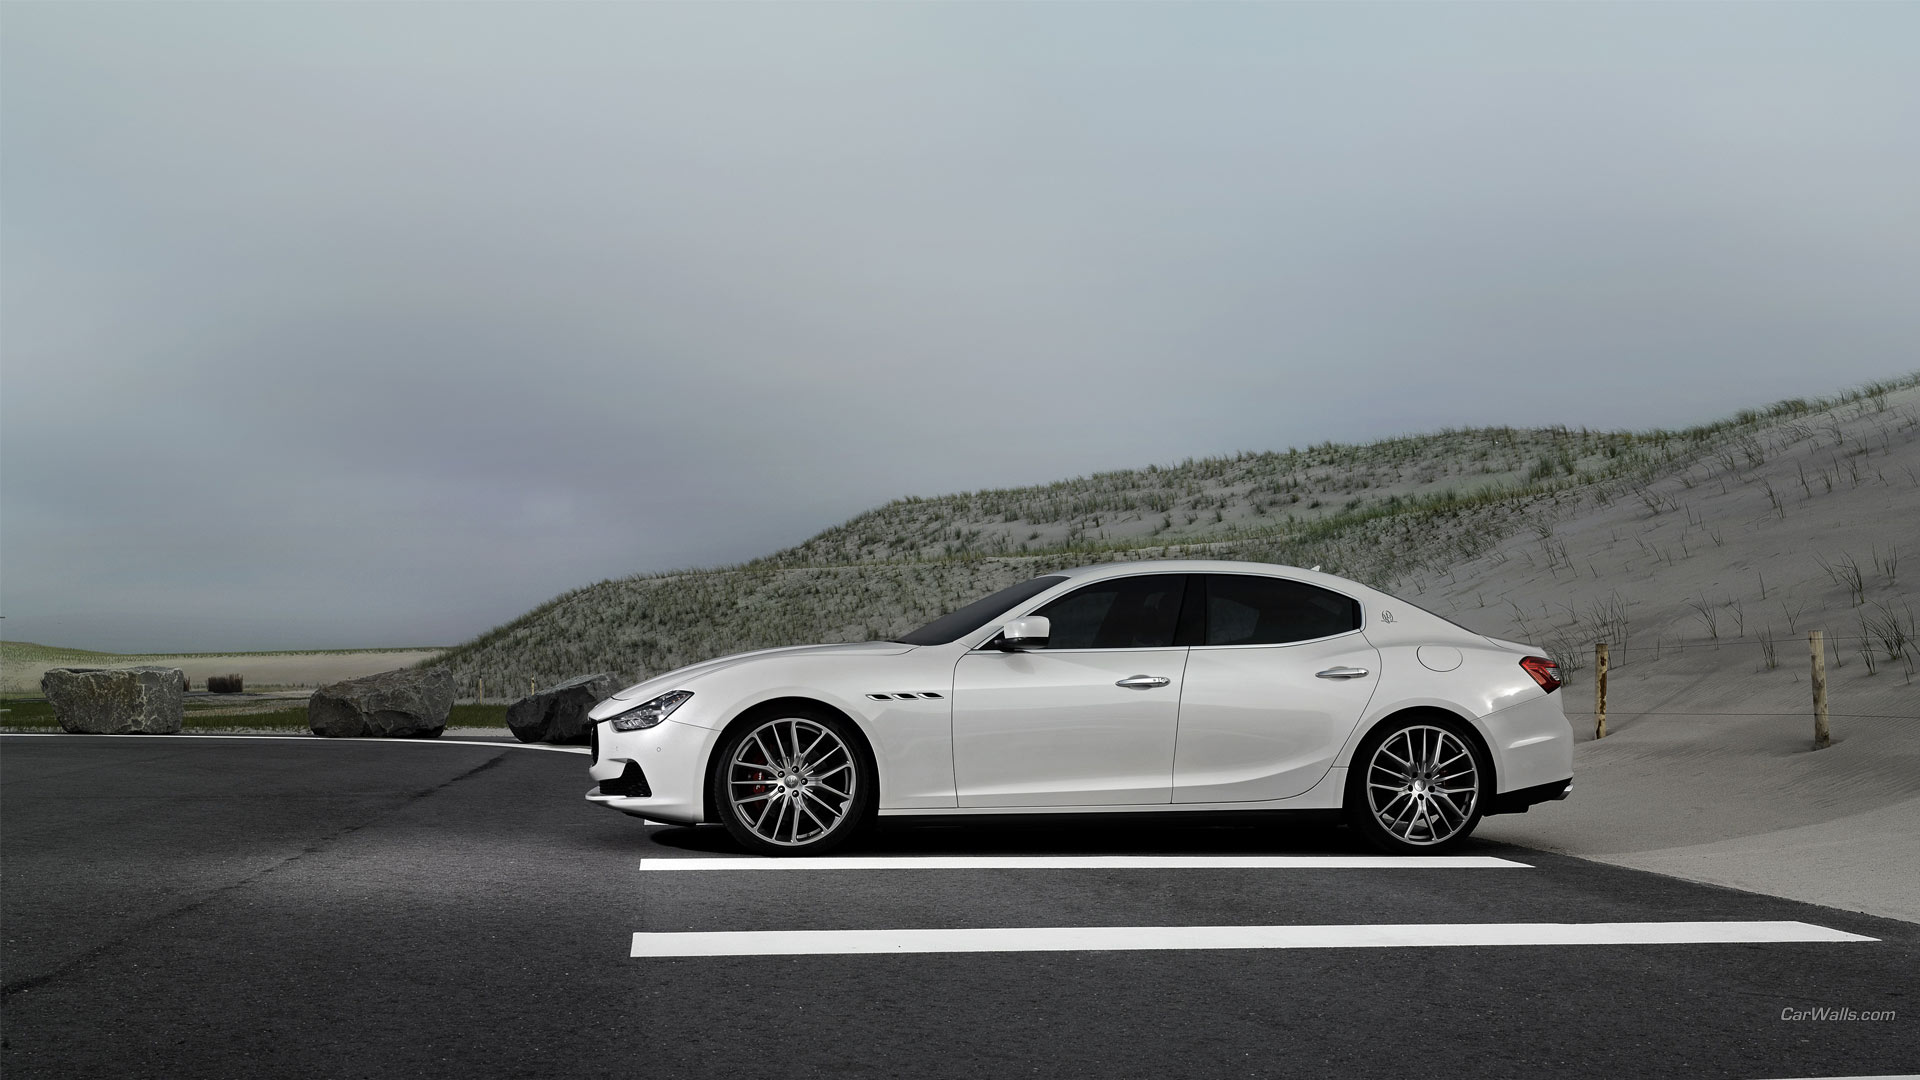 Maserati Ghibli Full HD Wallpaper and Background Image ...